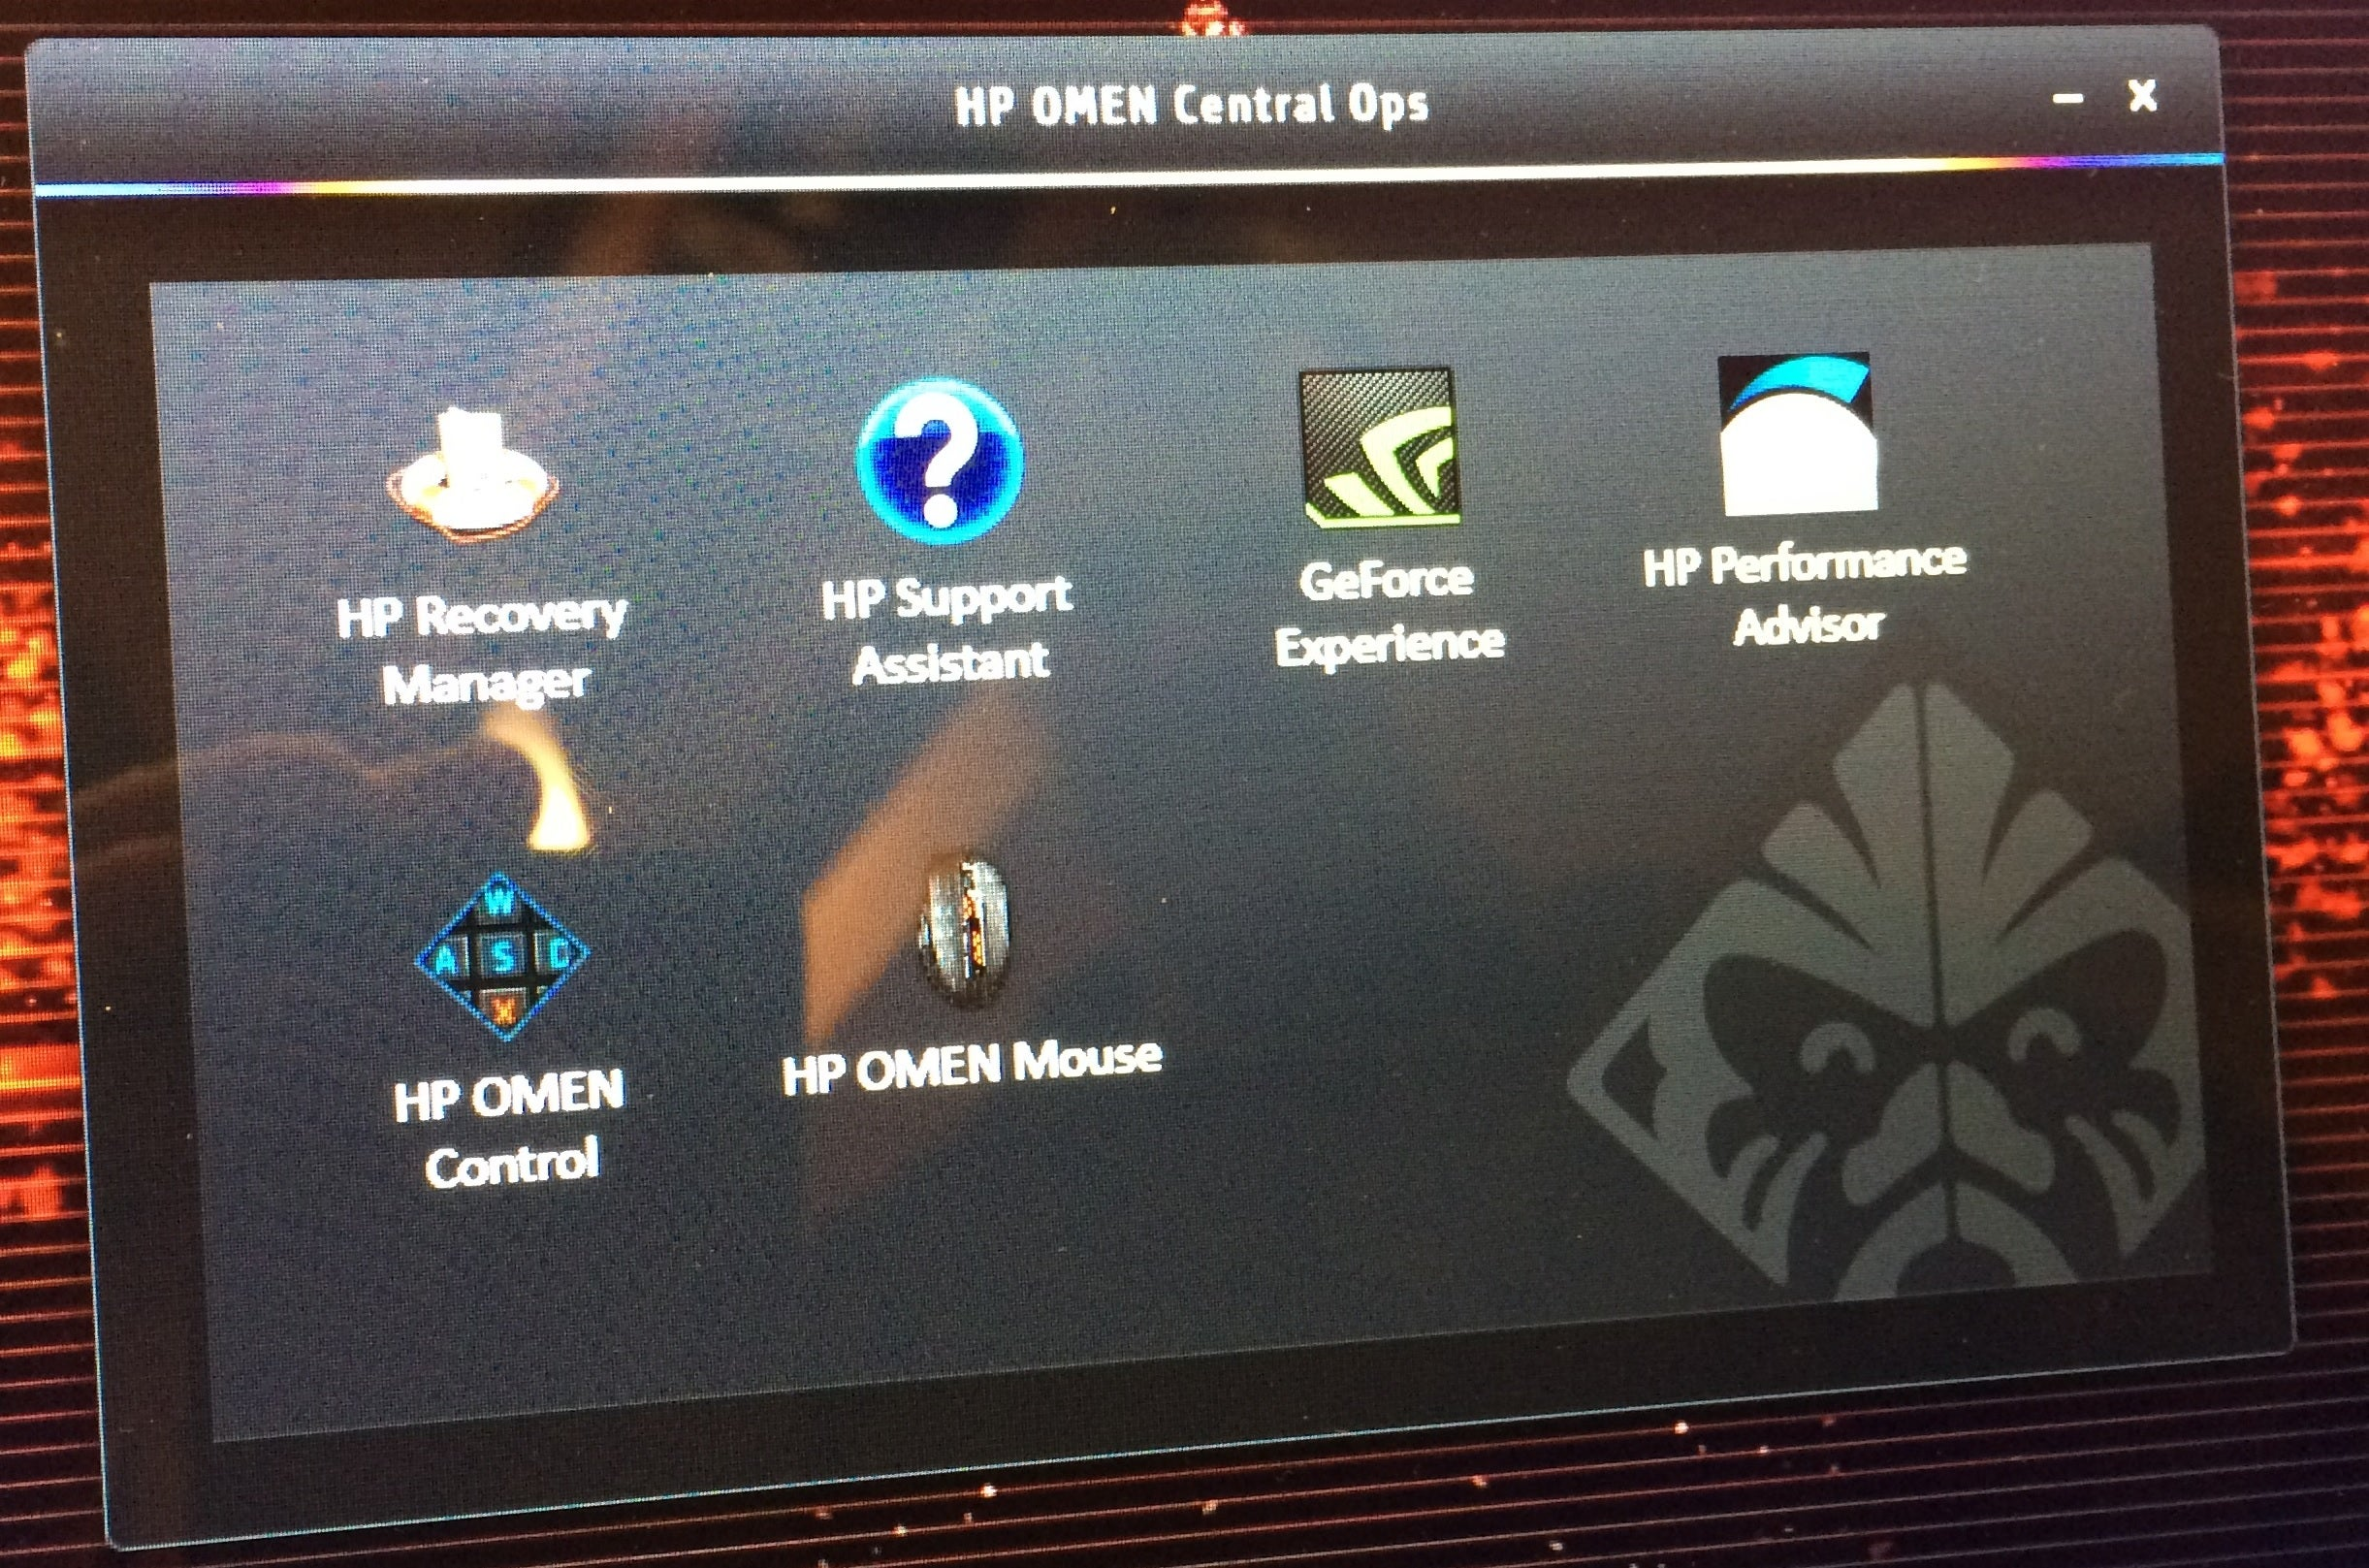 HP Omen gaming laptops with core i7 and Nvidia GTX 860M